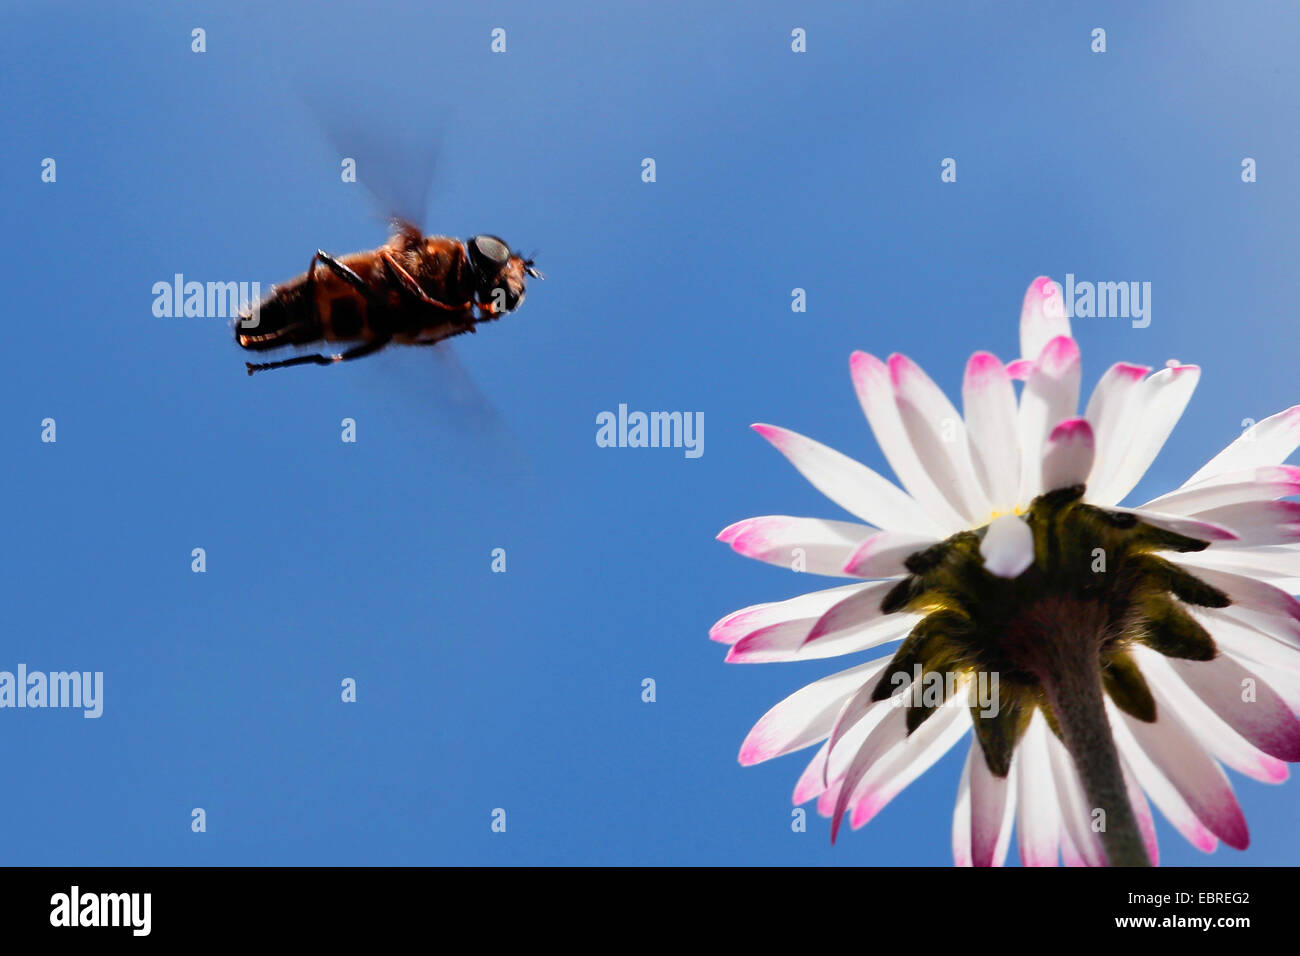 hoverflies, hover flies, syrphid flies, flower flies (Syrphidae), approaching a daisy, Germany - Stock Image